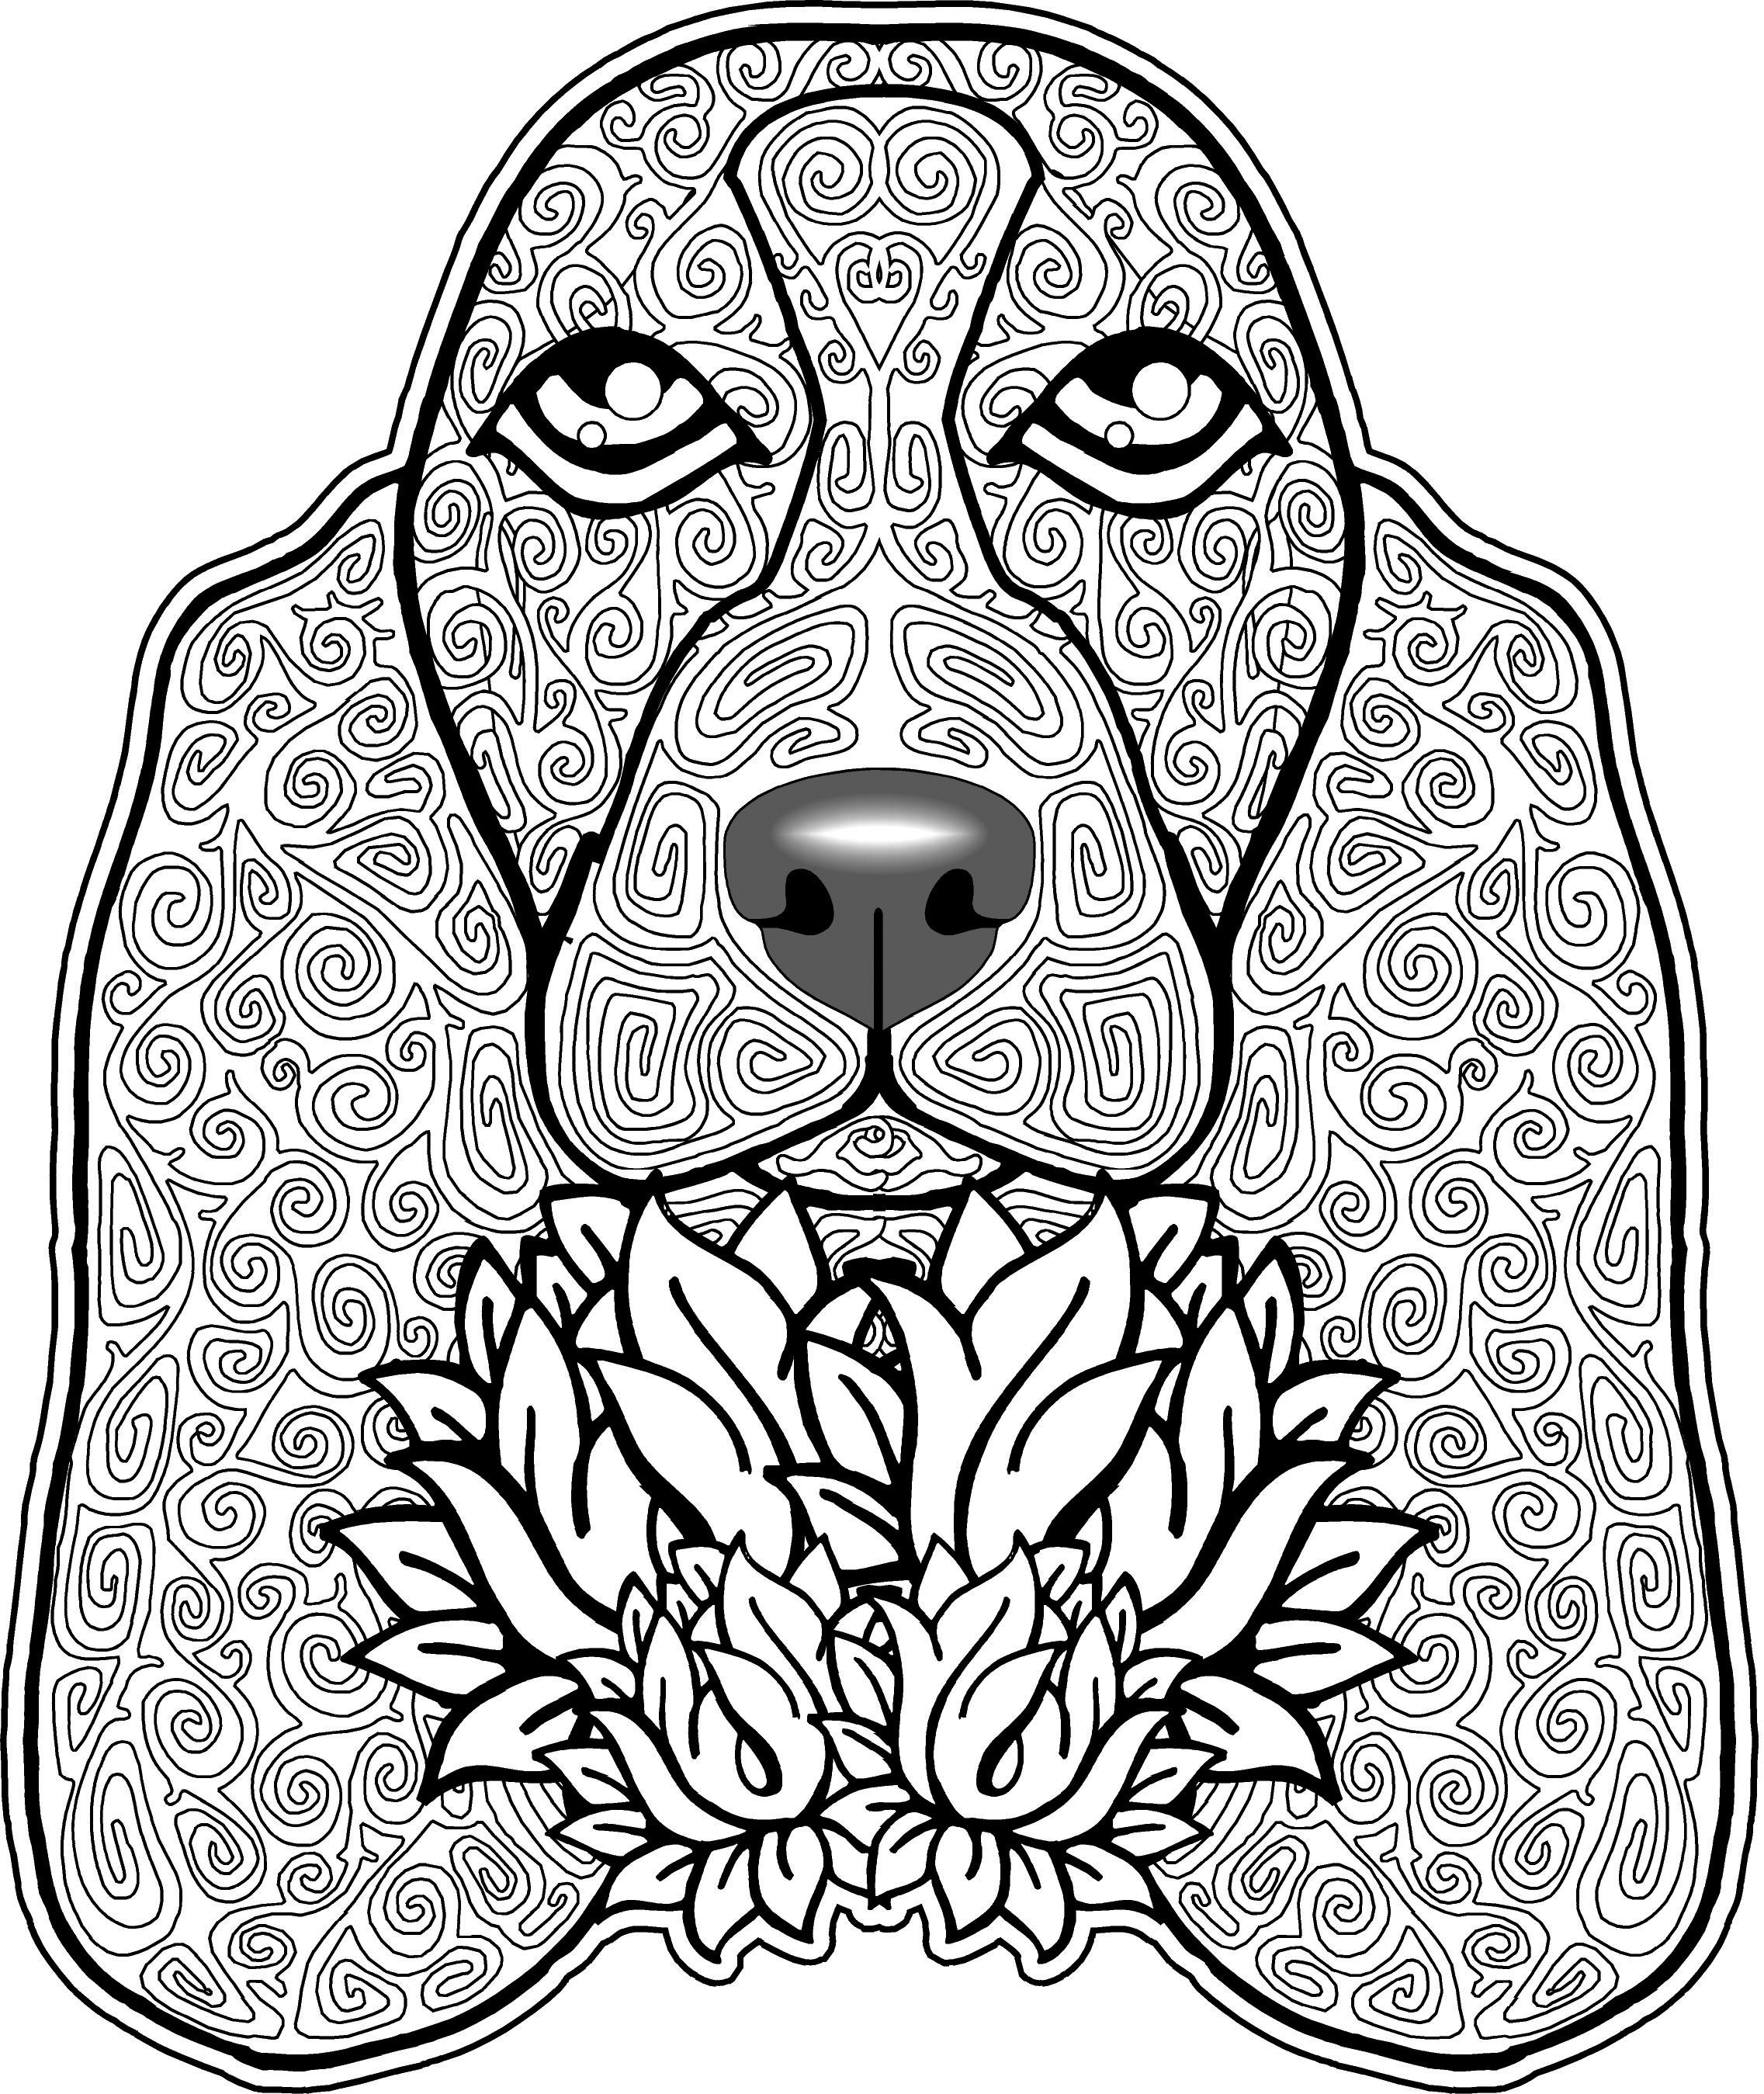 2273x2698 Dog Head Bimdeedee Dogs Coloring Pages For Adults Justcolor Lovely